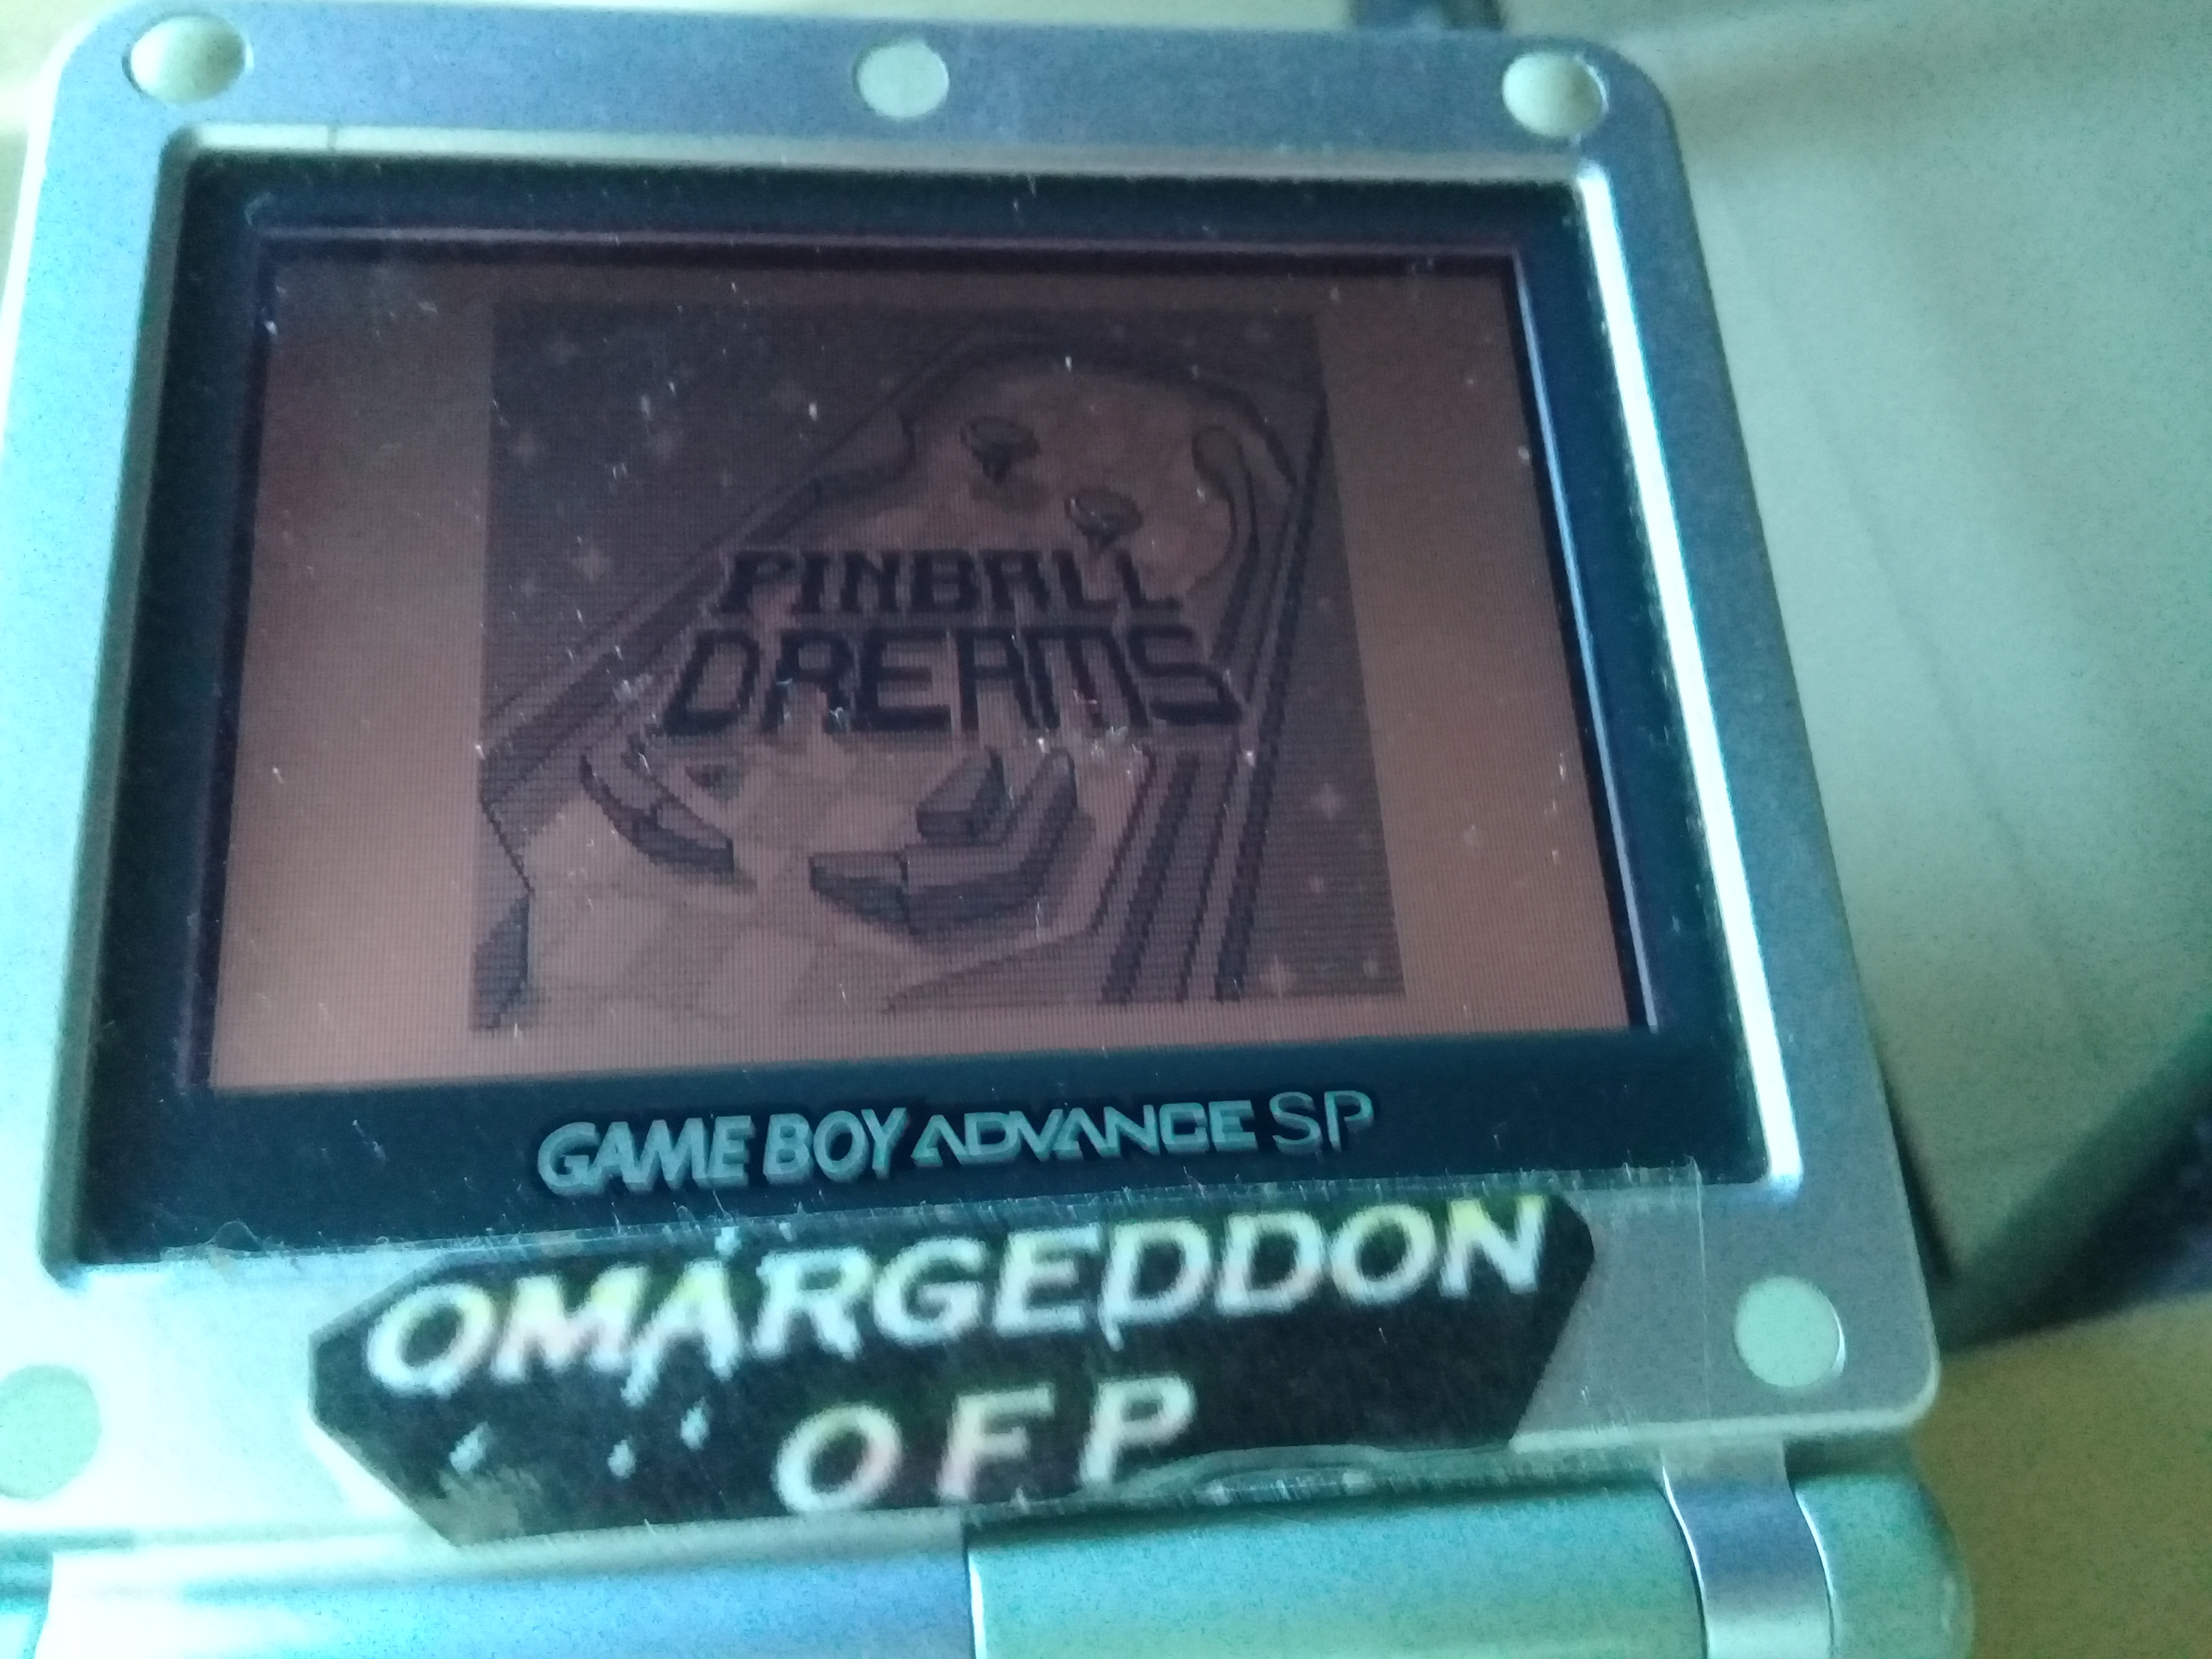 omargeddon: Pinball Dreams: Steel Wheel (Game Boy) 9,505,731 points on 2019-04-19 16:56:44